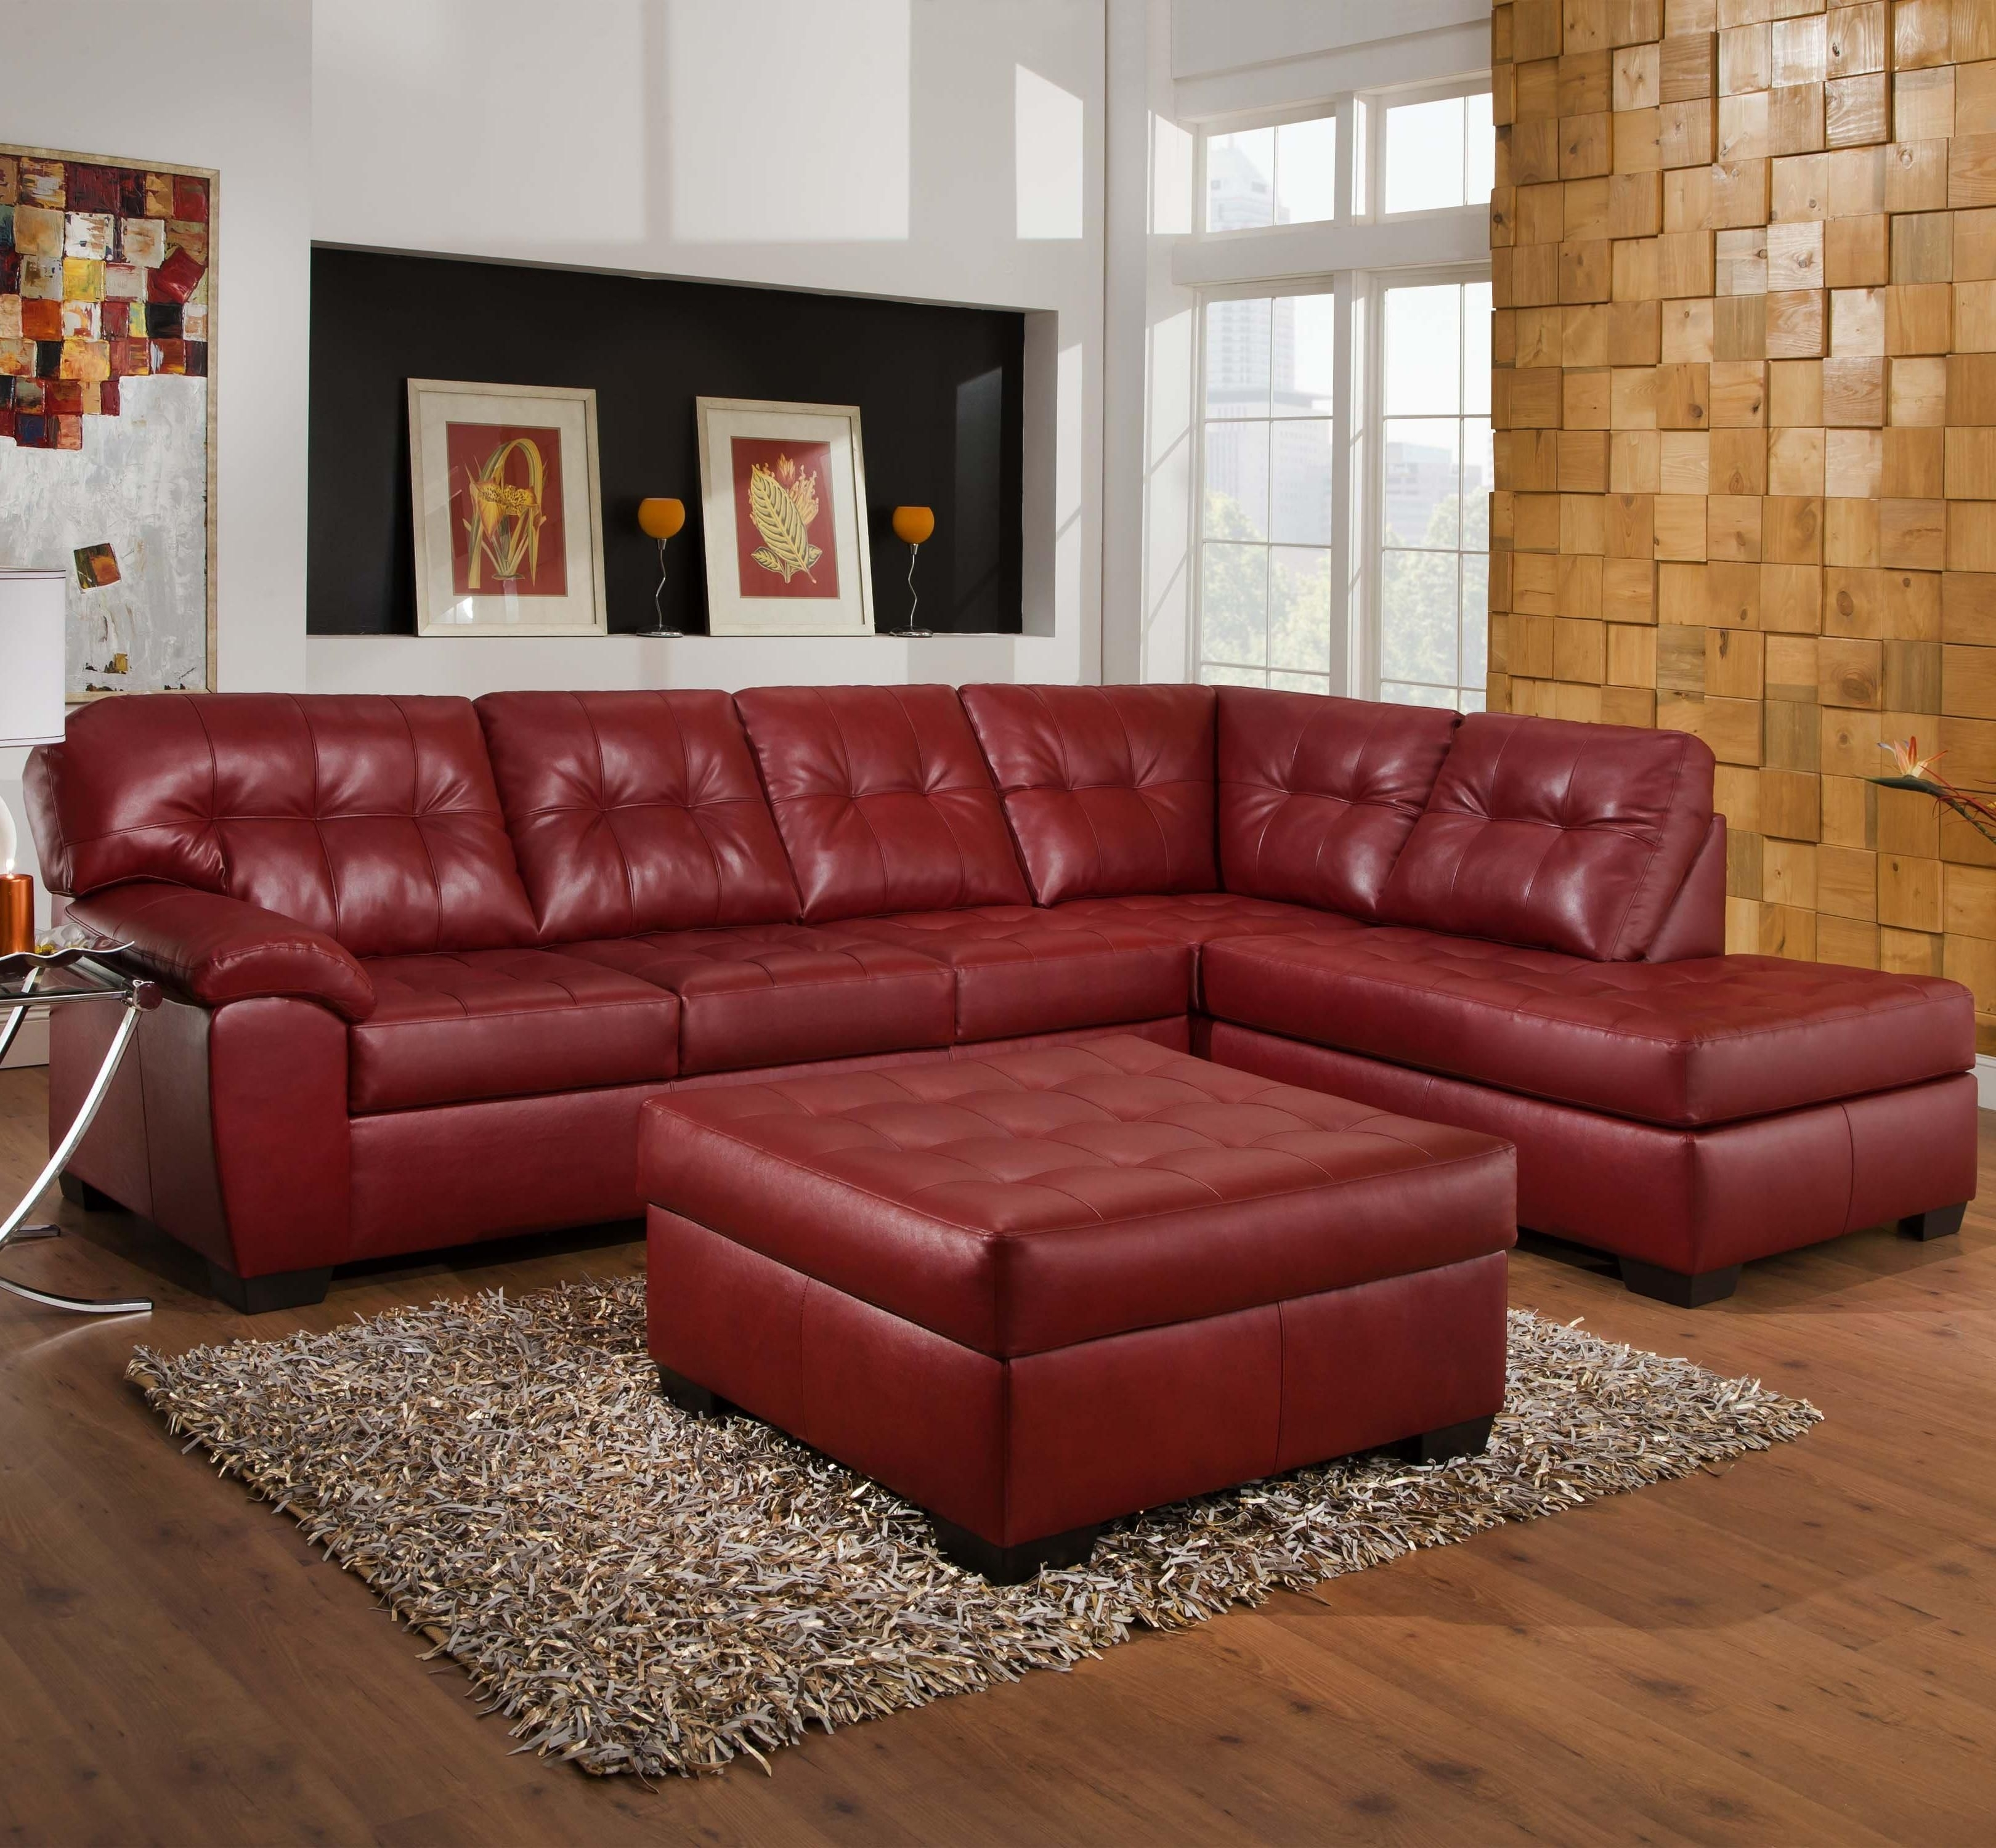 9569 2 Piece Sectional With Tufted Seats & Backsimmons with Jackson Tn Sectional Sofas